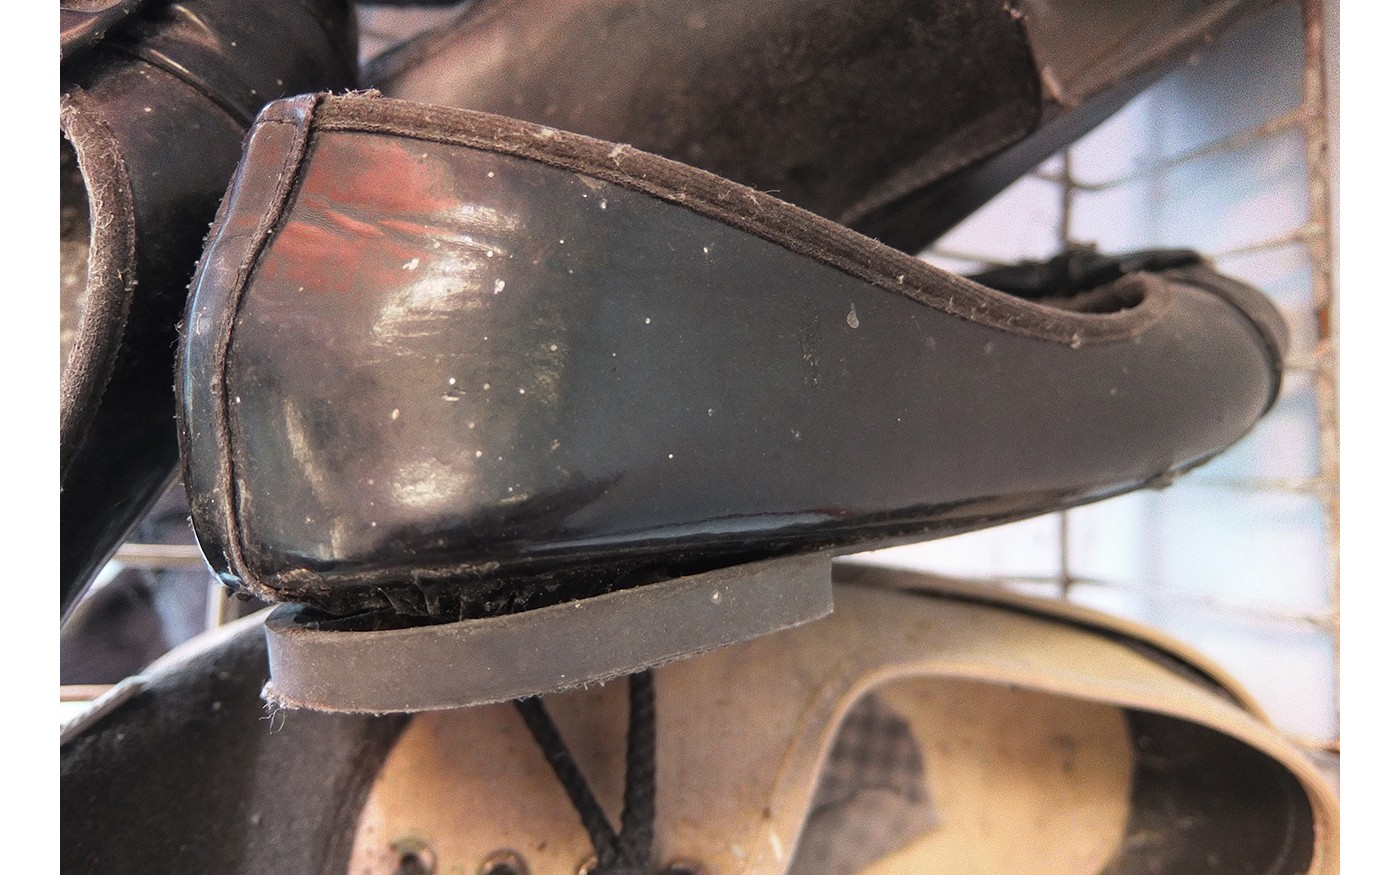 Shoes that have been glued